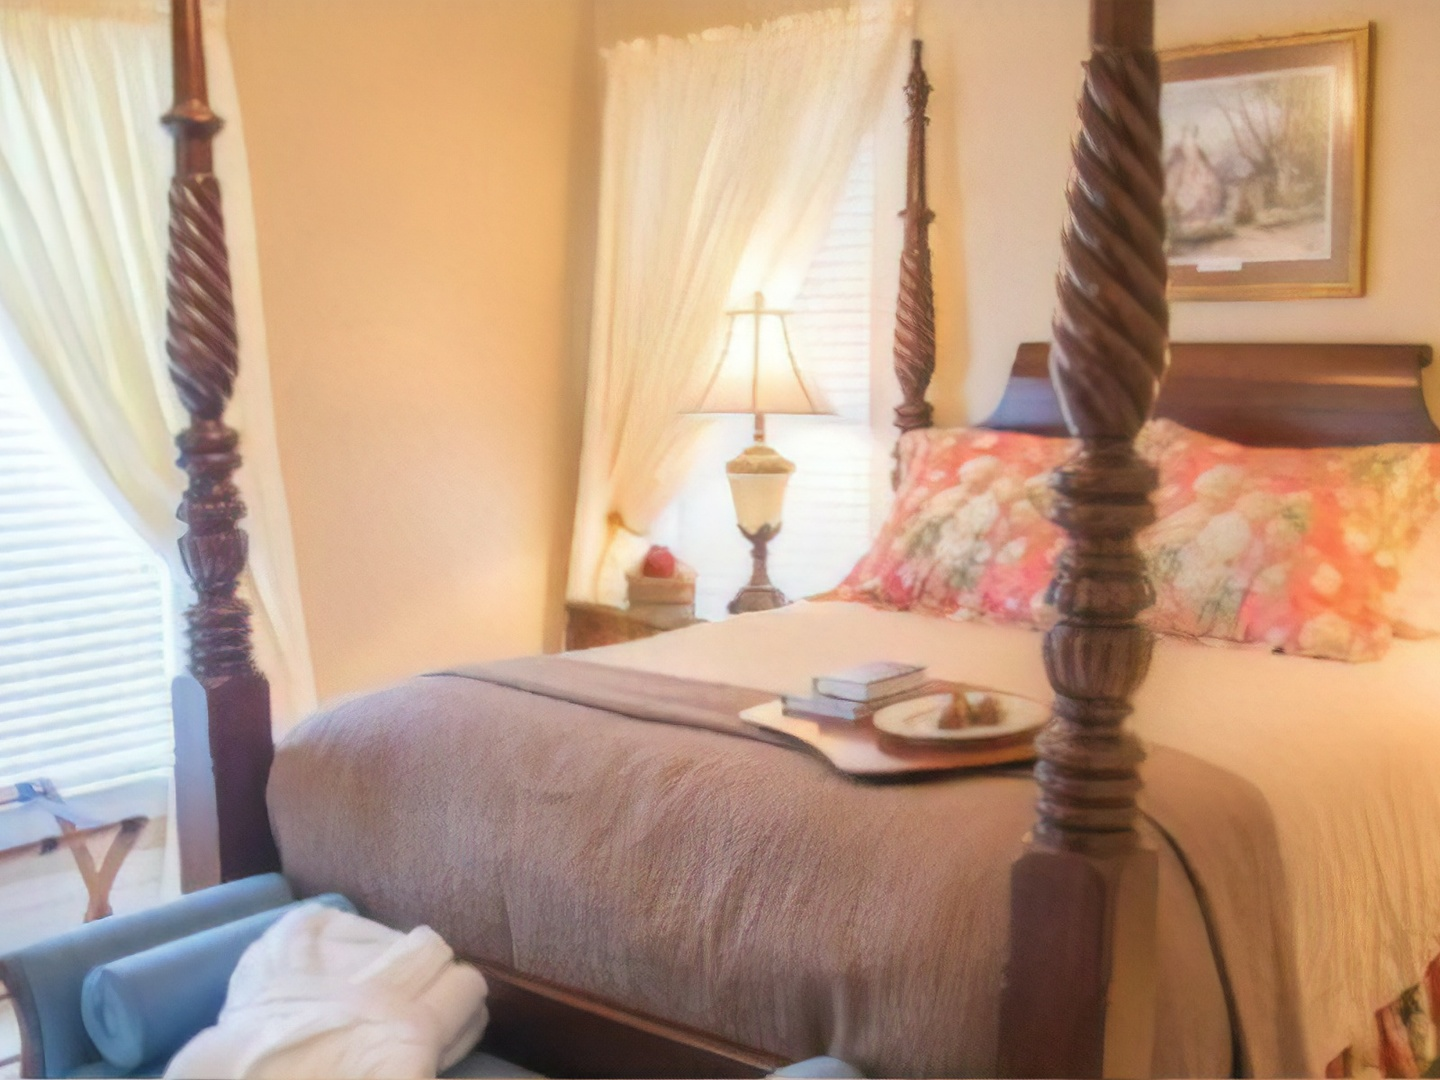 A bedroom with a lamp on a table at Blessings on State Bed & Breakfast.